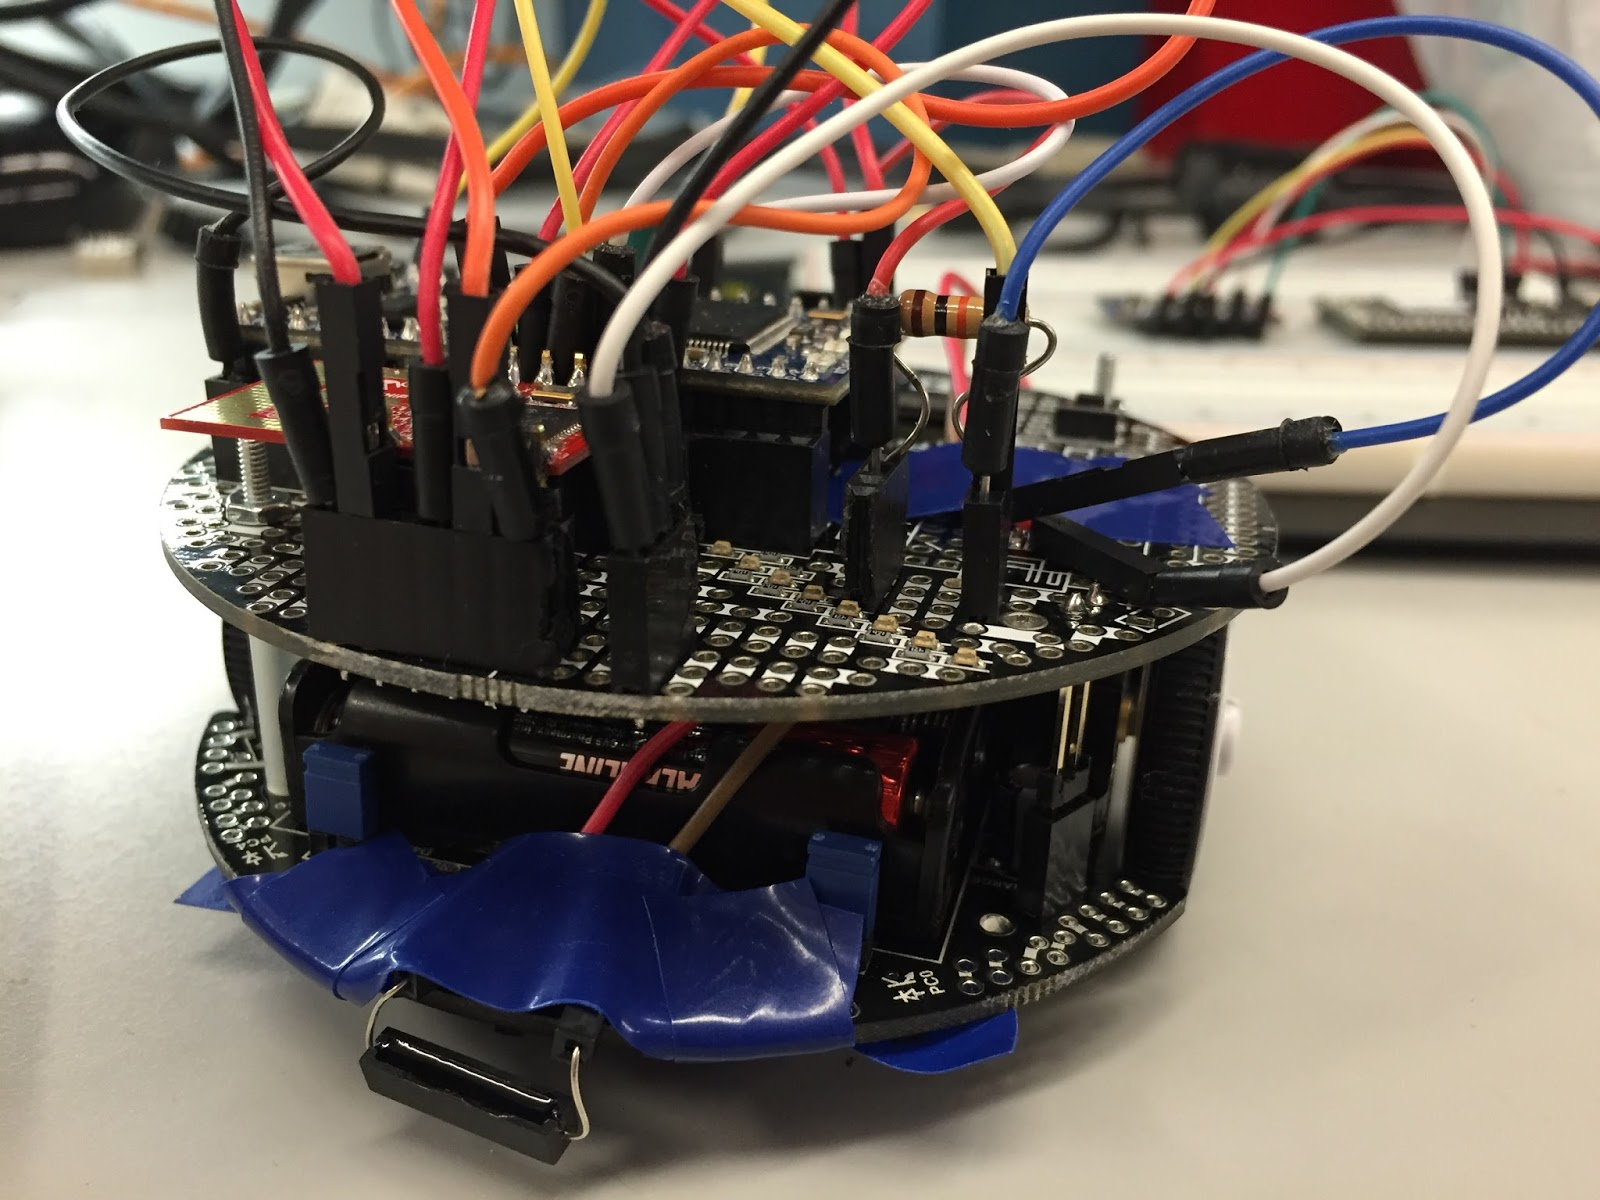 Multi Robot Area Covering Switching From Hall Effect Sensor To Reed How Build A Circuit I Even Tried Connect Two Switches In Parallel Extend The They Can Detect But It Didnt Help Too Much Because Primary Problem Is